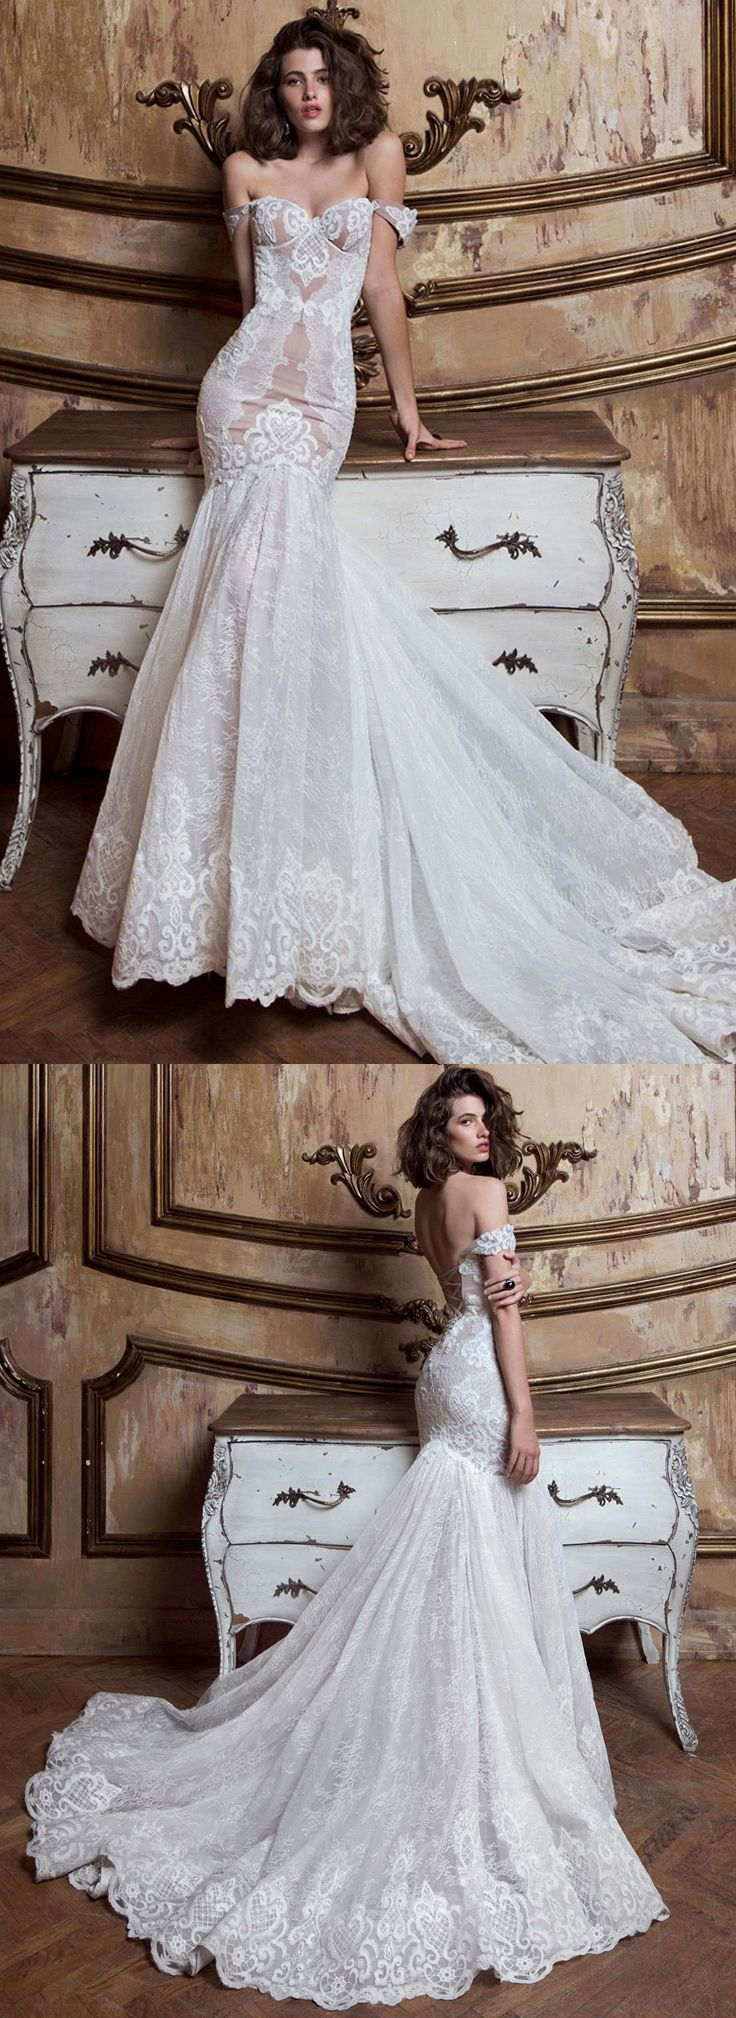 One of a kind wedding dresses  This gorgeous one of a kind bridal gown wedding dress is sure to